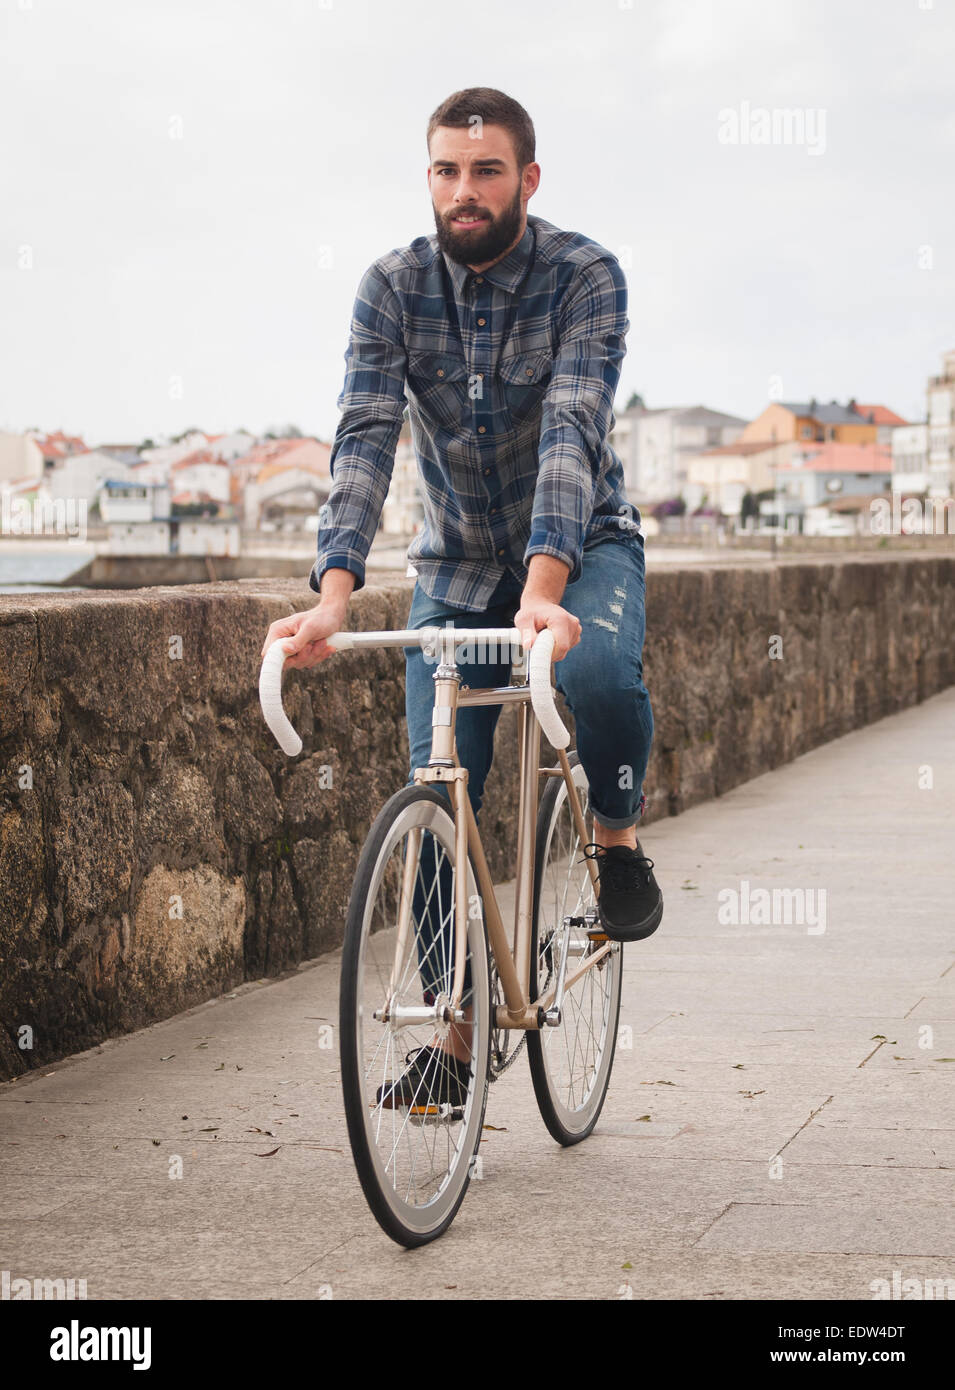 Hipster man riding in a fixie bike in the city. - Stock Image